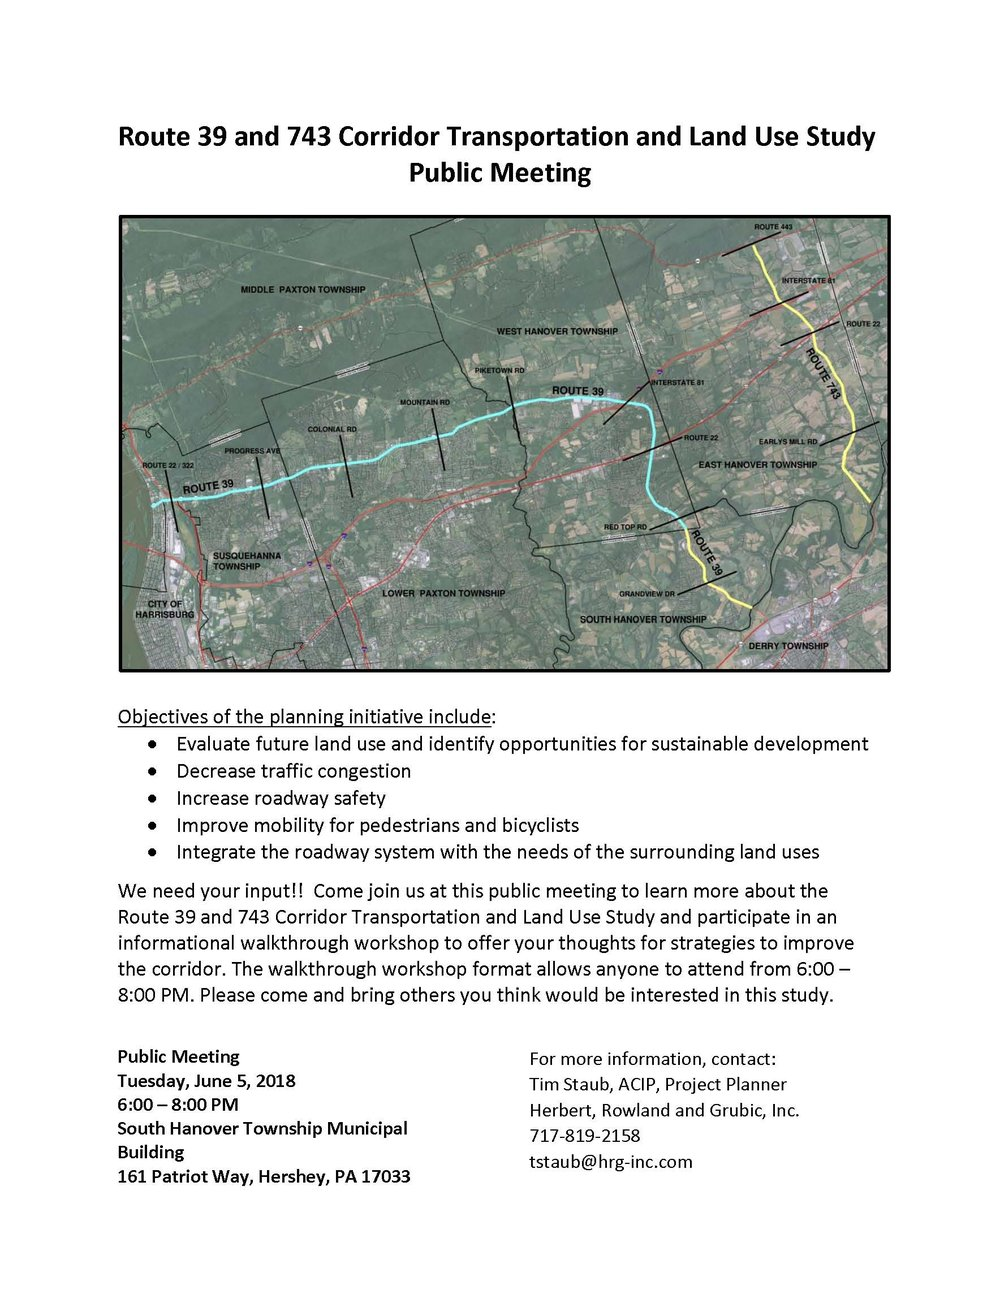 Click for meeting flyer